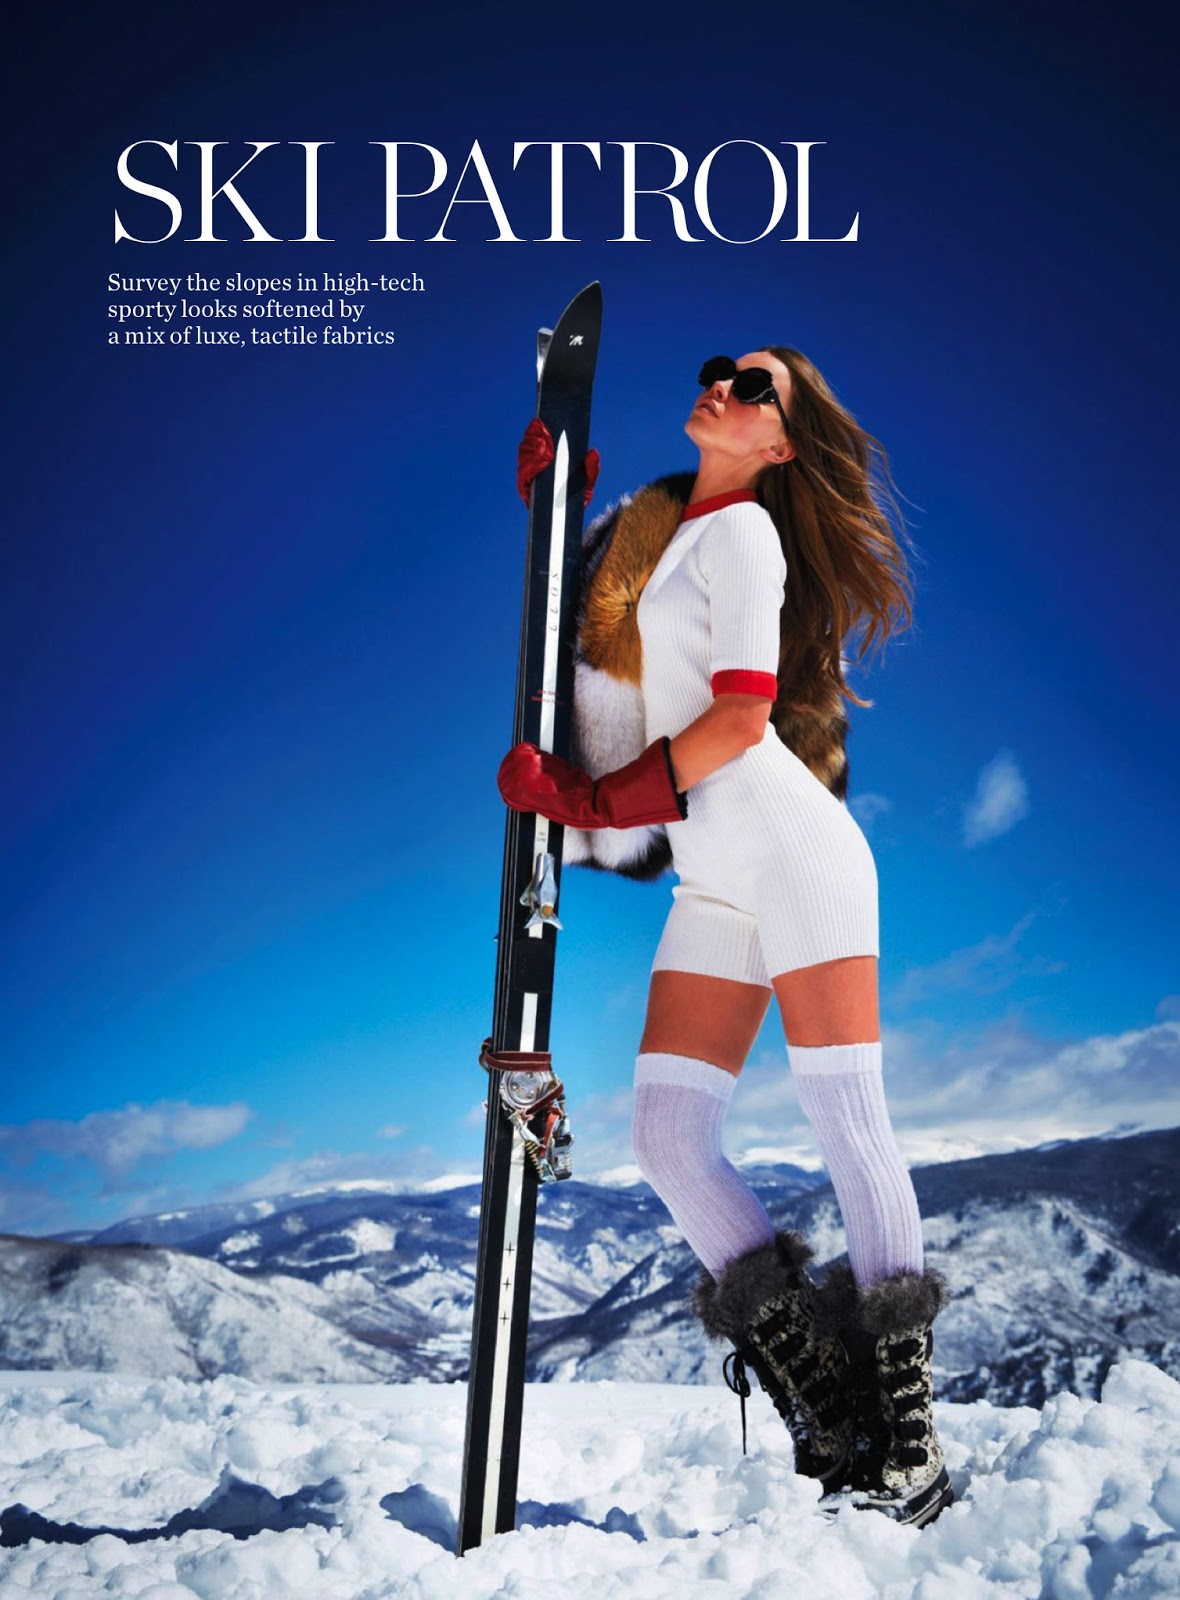 Fall Feather Wallpaper Ski Patrol Serafima Kobzeva By Rick Truscott For Marie